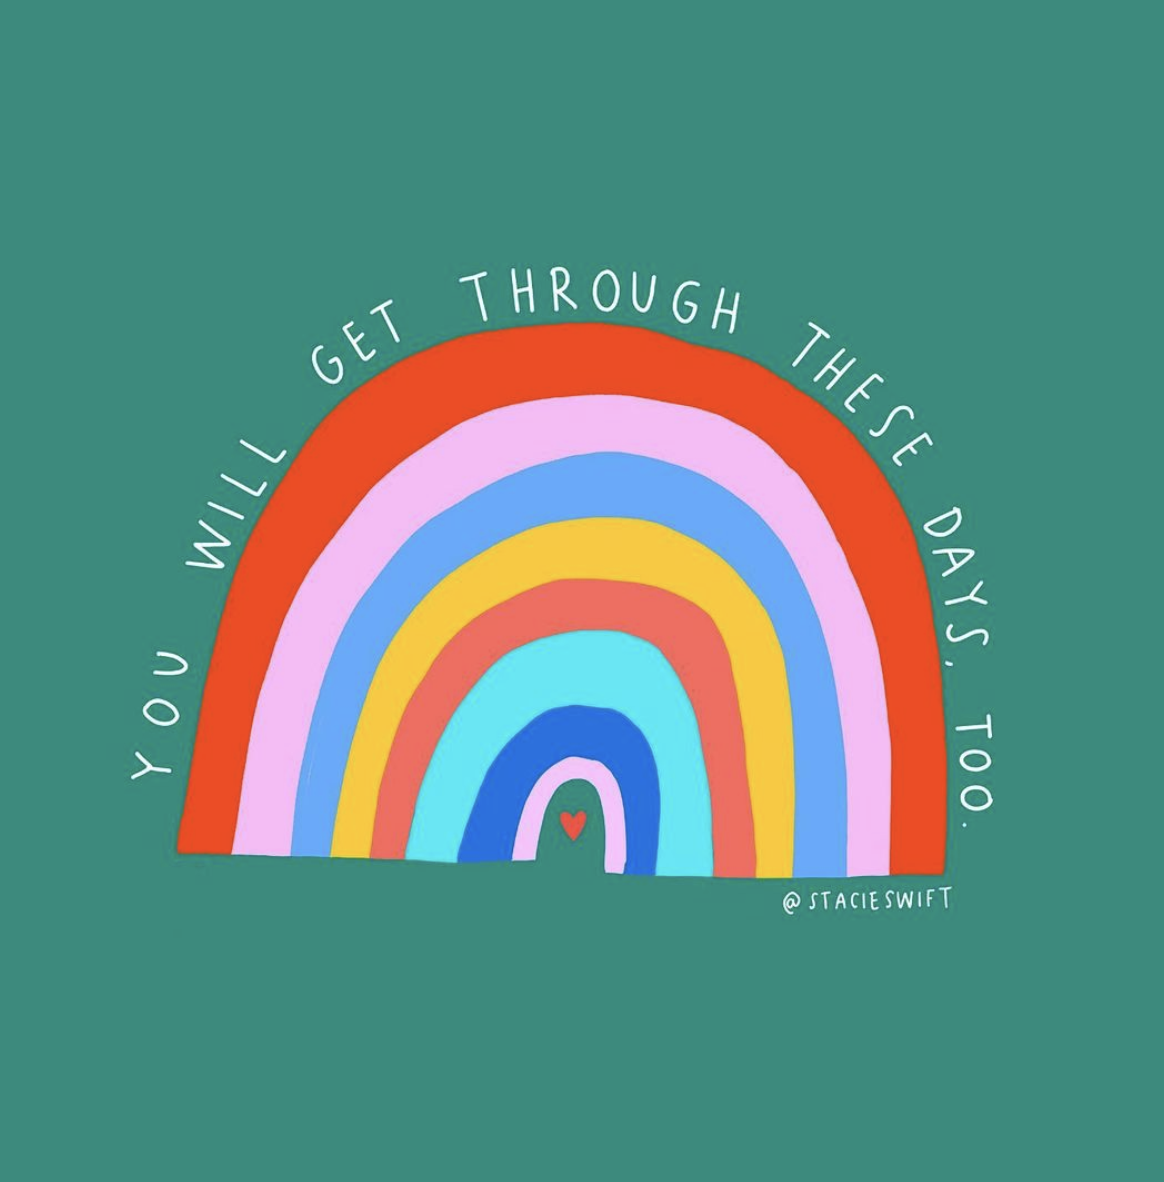 Rainbow illustrated with text